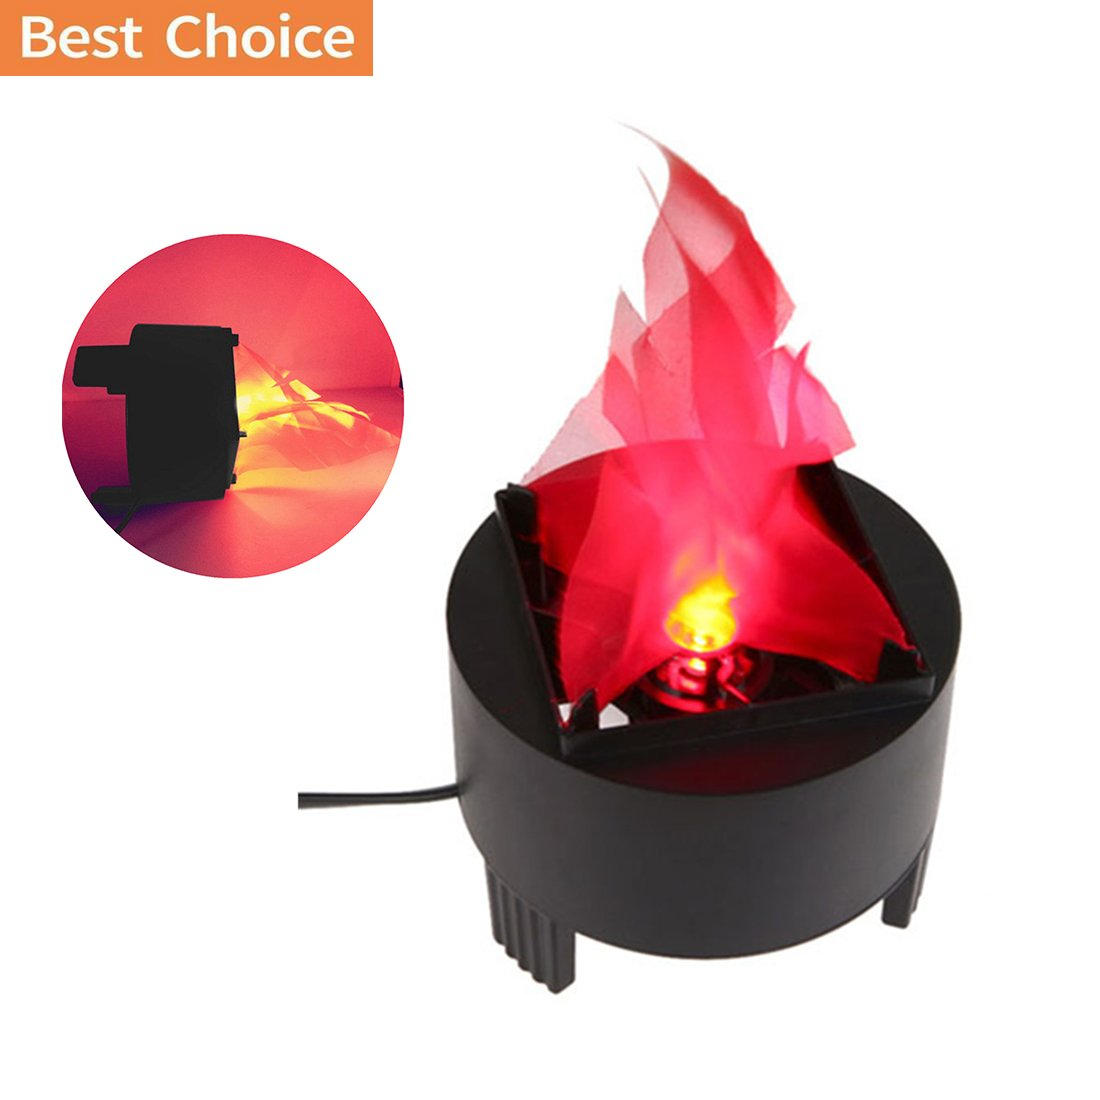 Portable Electronic 3W LED Fake Fire Flame Simulated Flame Effect Light Campfire Centerpiece with Pot Bowl for Night Clubs Party Home Decor (US Plug)